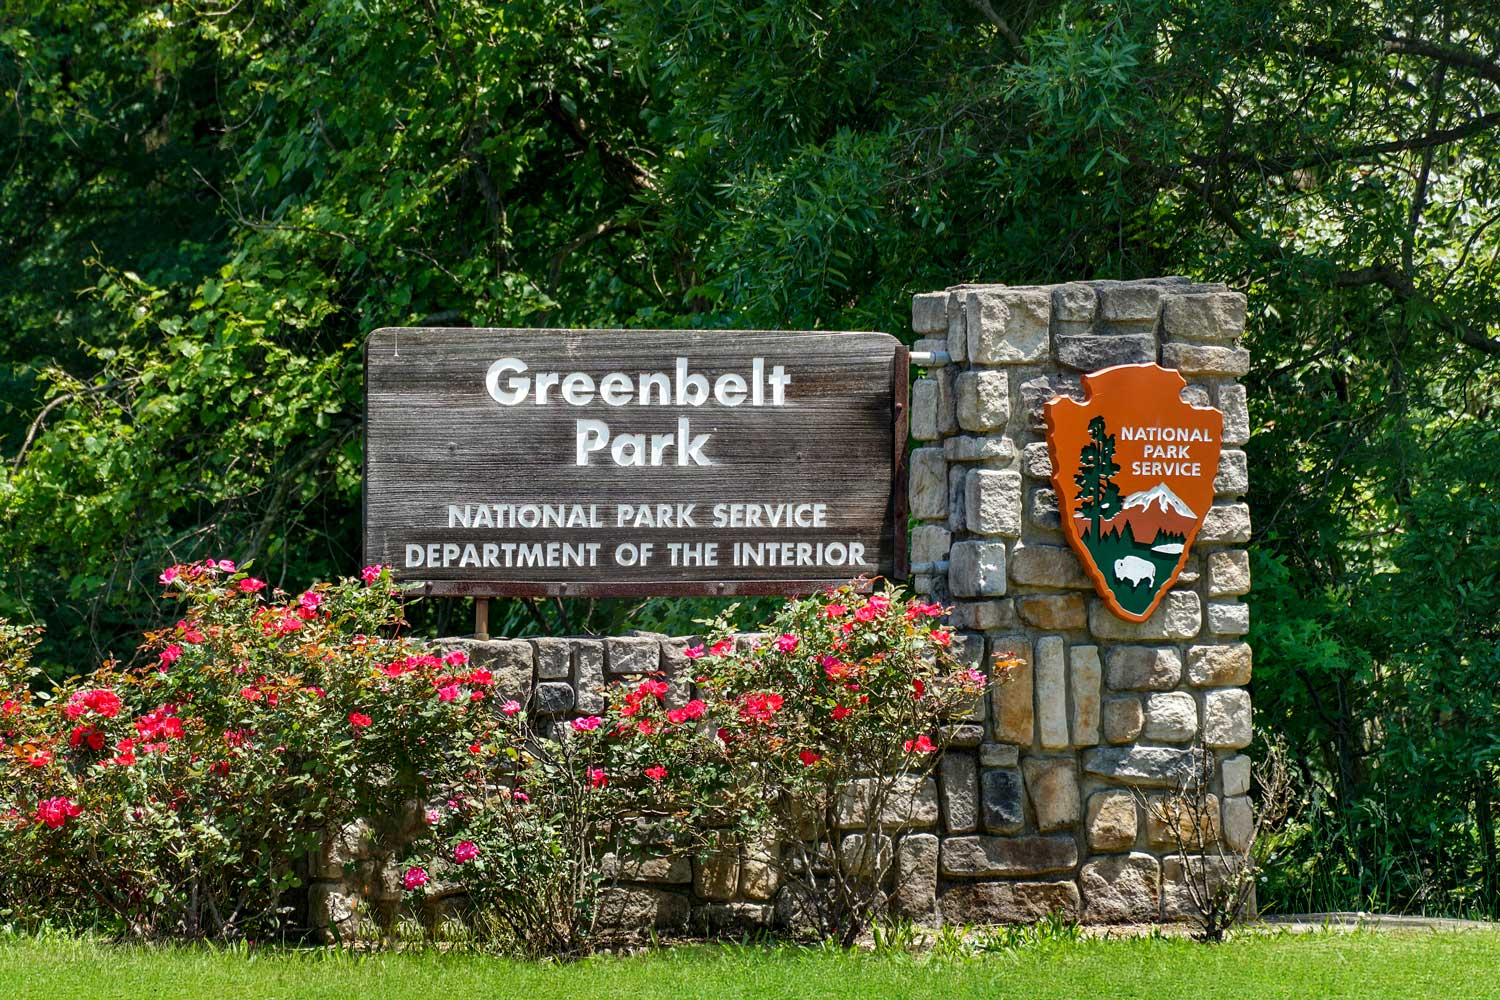 Greenbelt Park is 10 minutes from Carrollon Manor Apartments in New Carrollton, MD